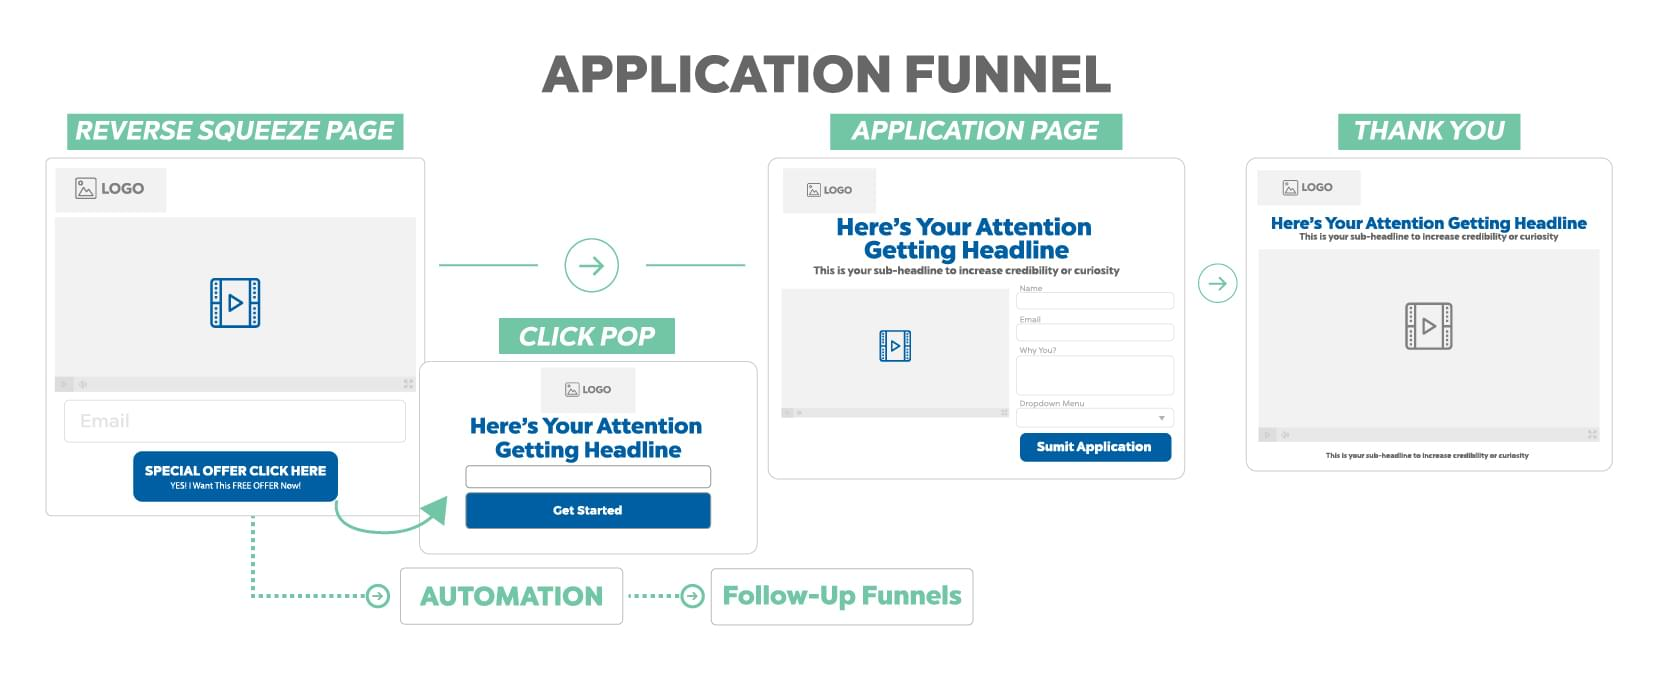 Application Funnel